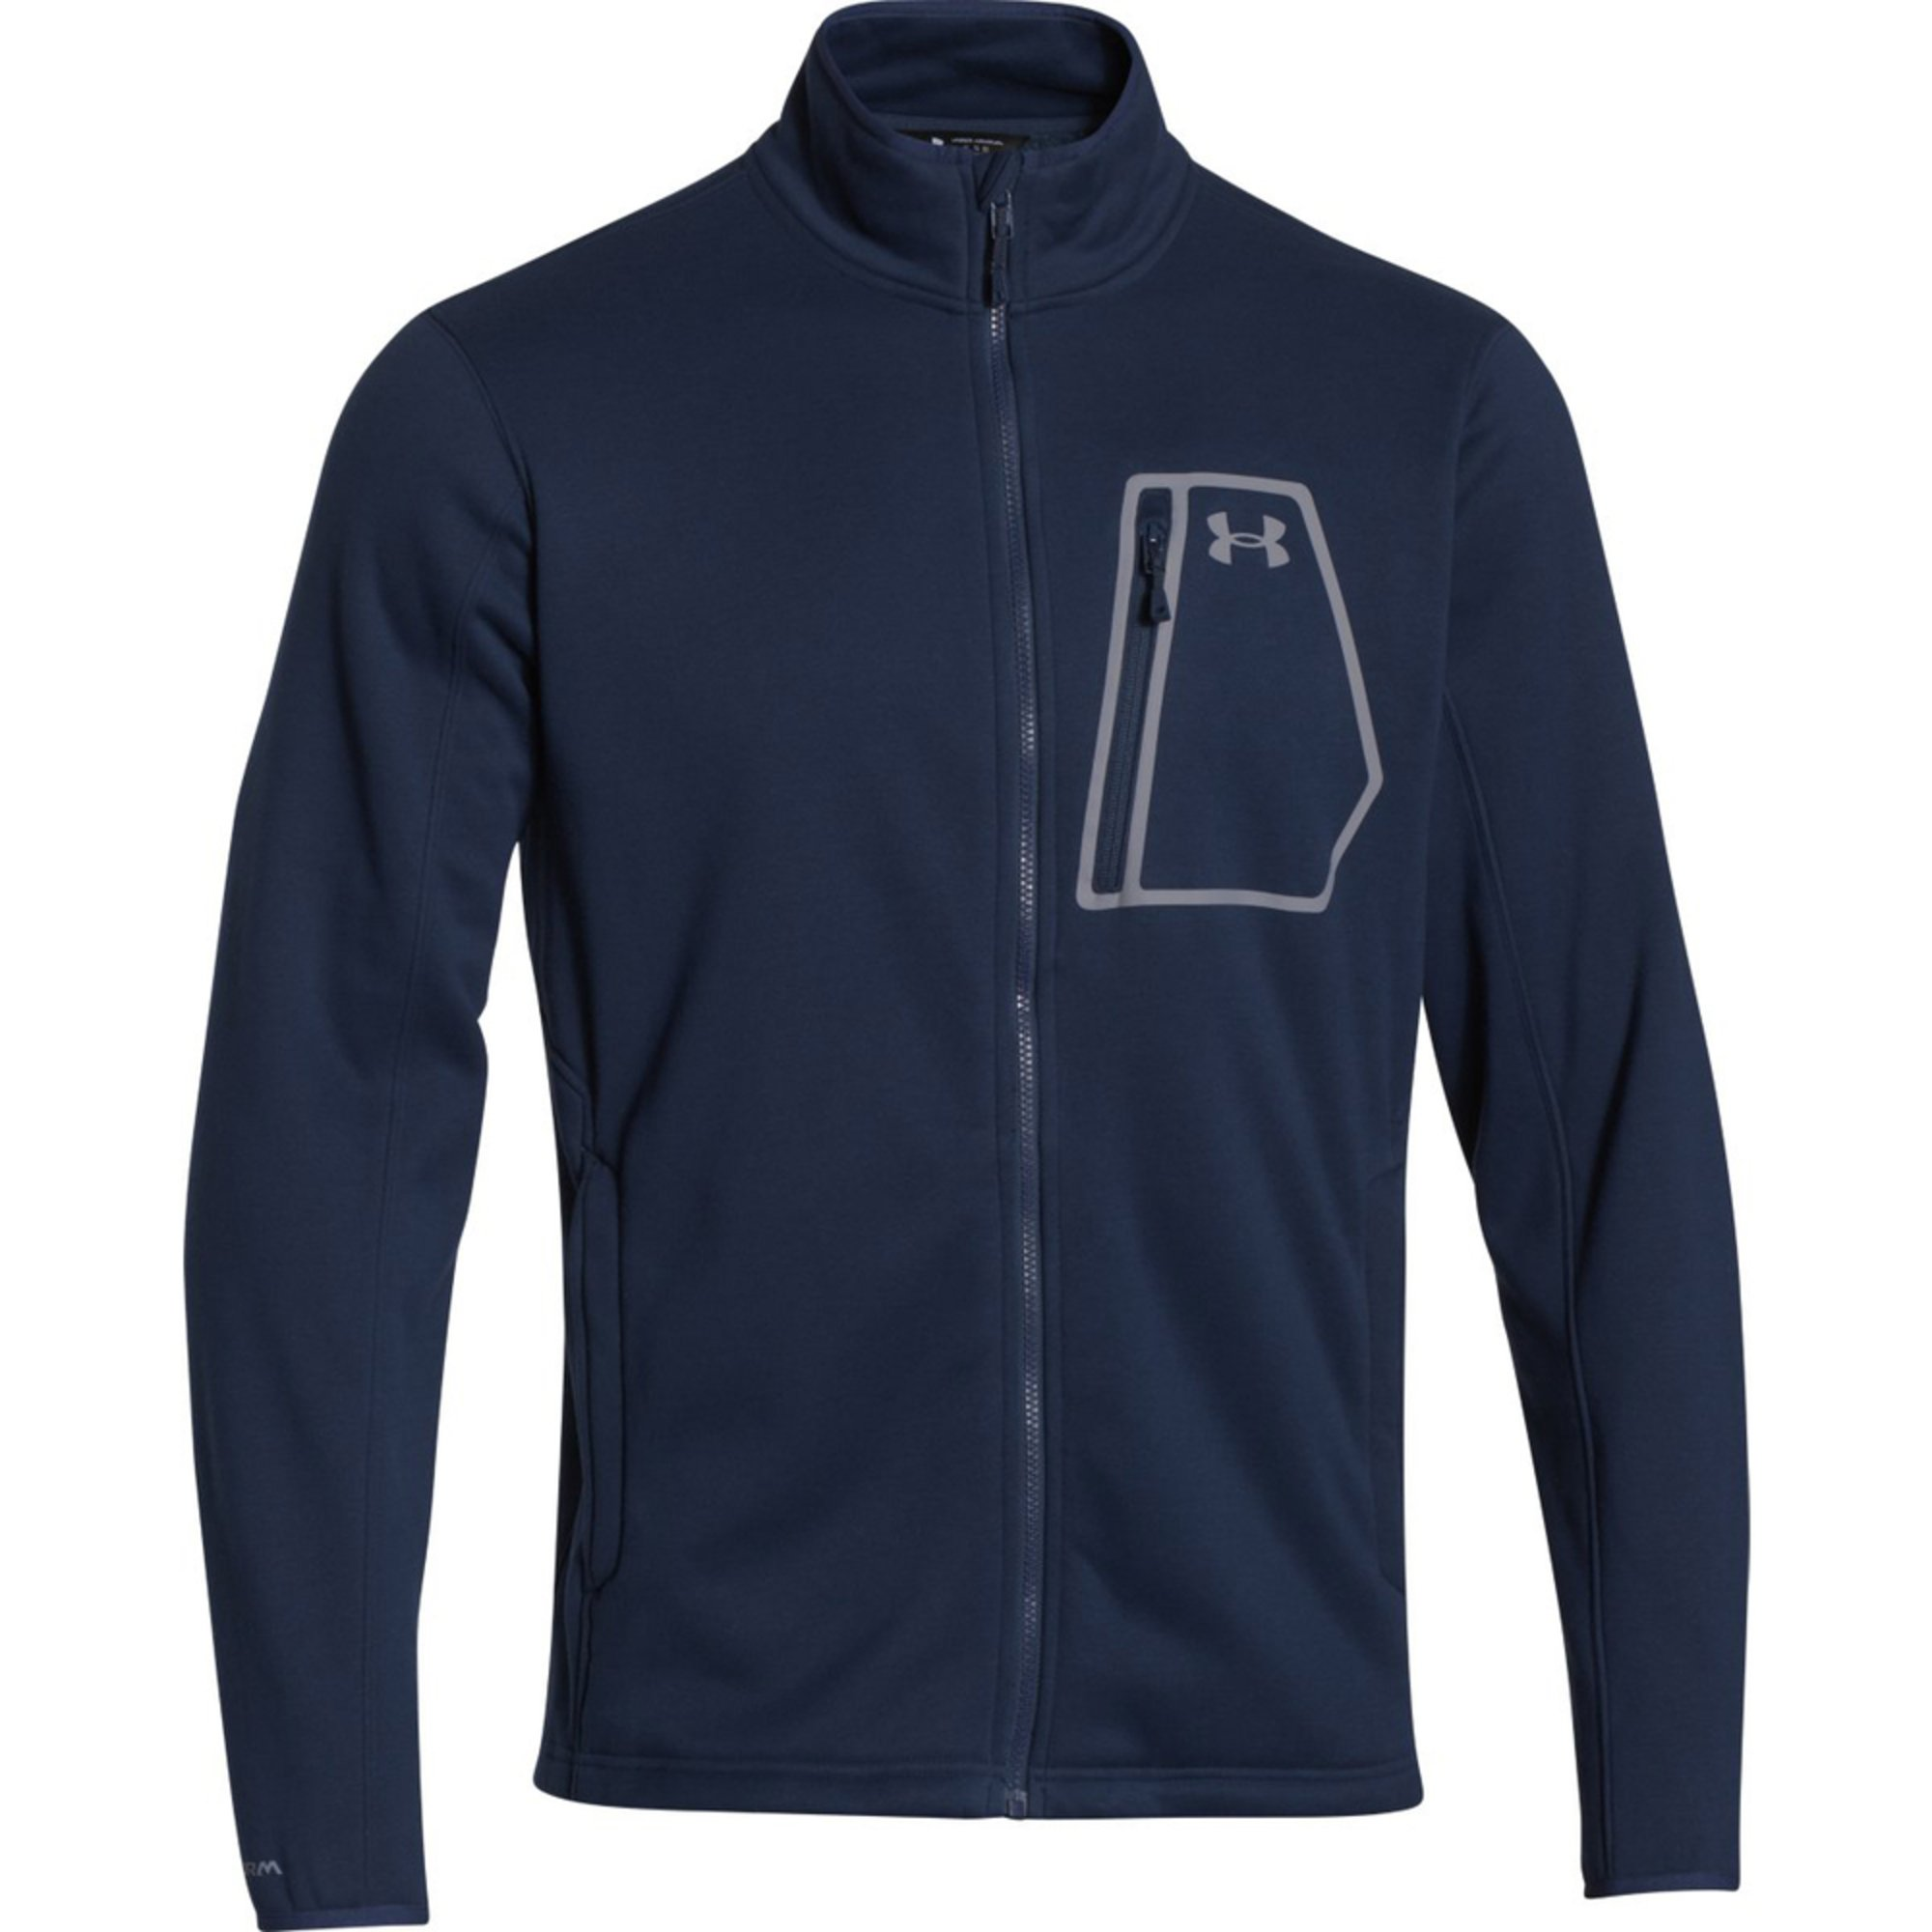 Under armour extreme coldgear jacket men 39 s clothing for Under armour men s shirts clearance